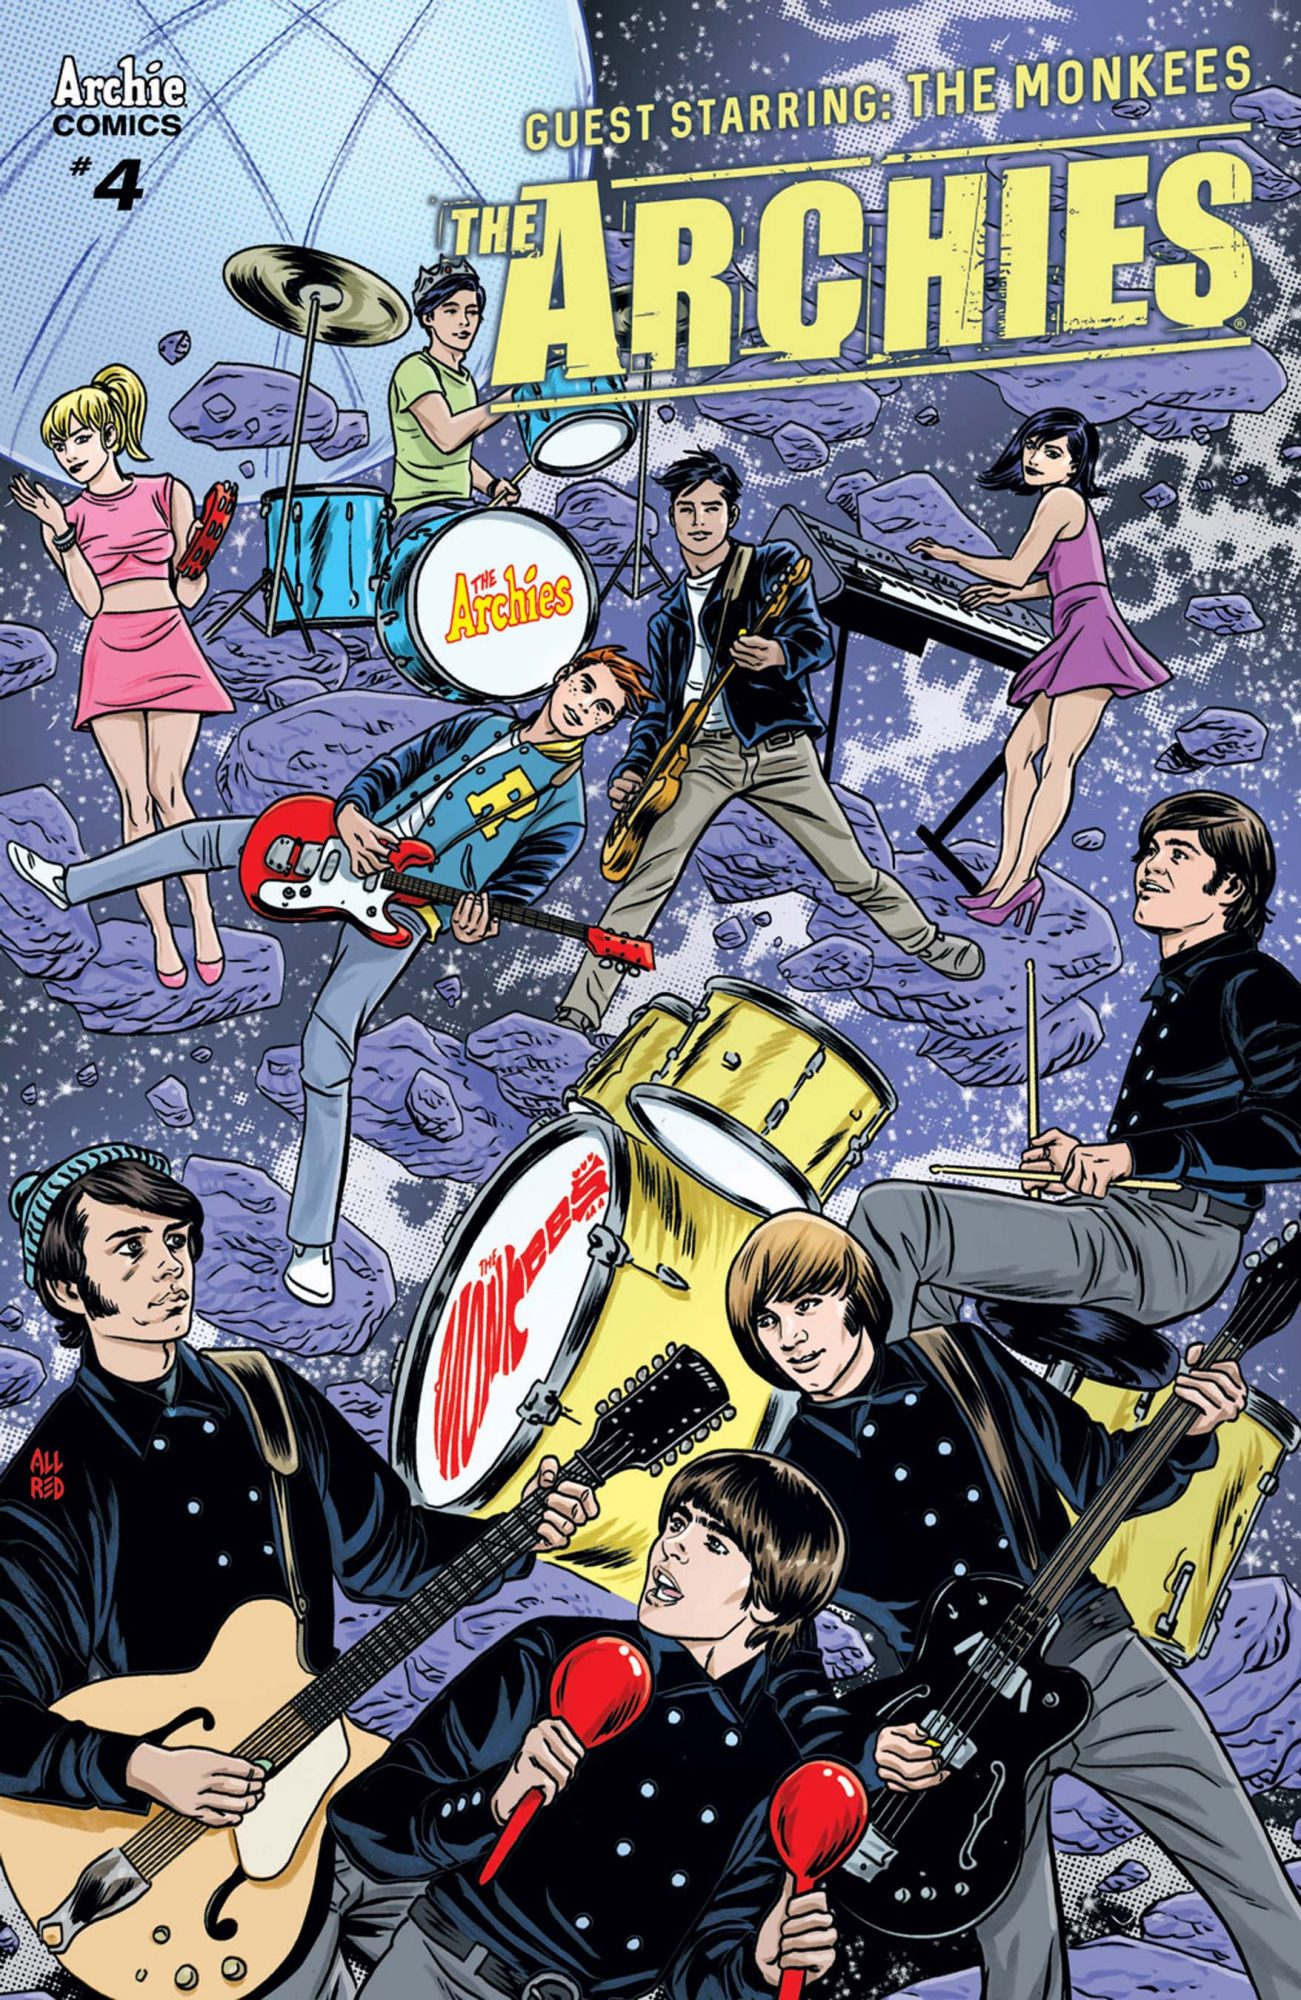 TheArchies#4-Allred